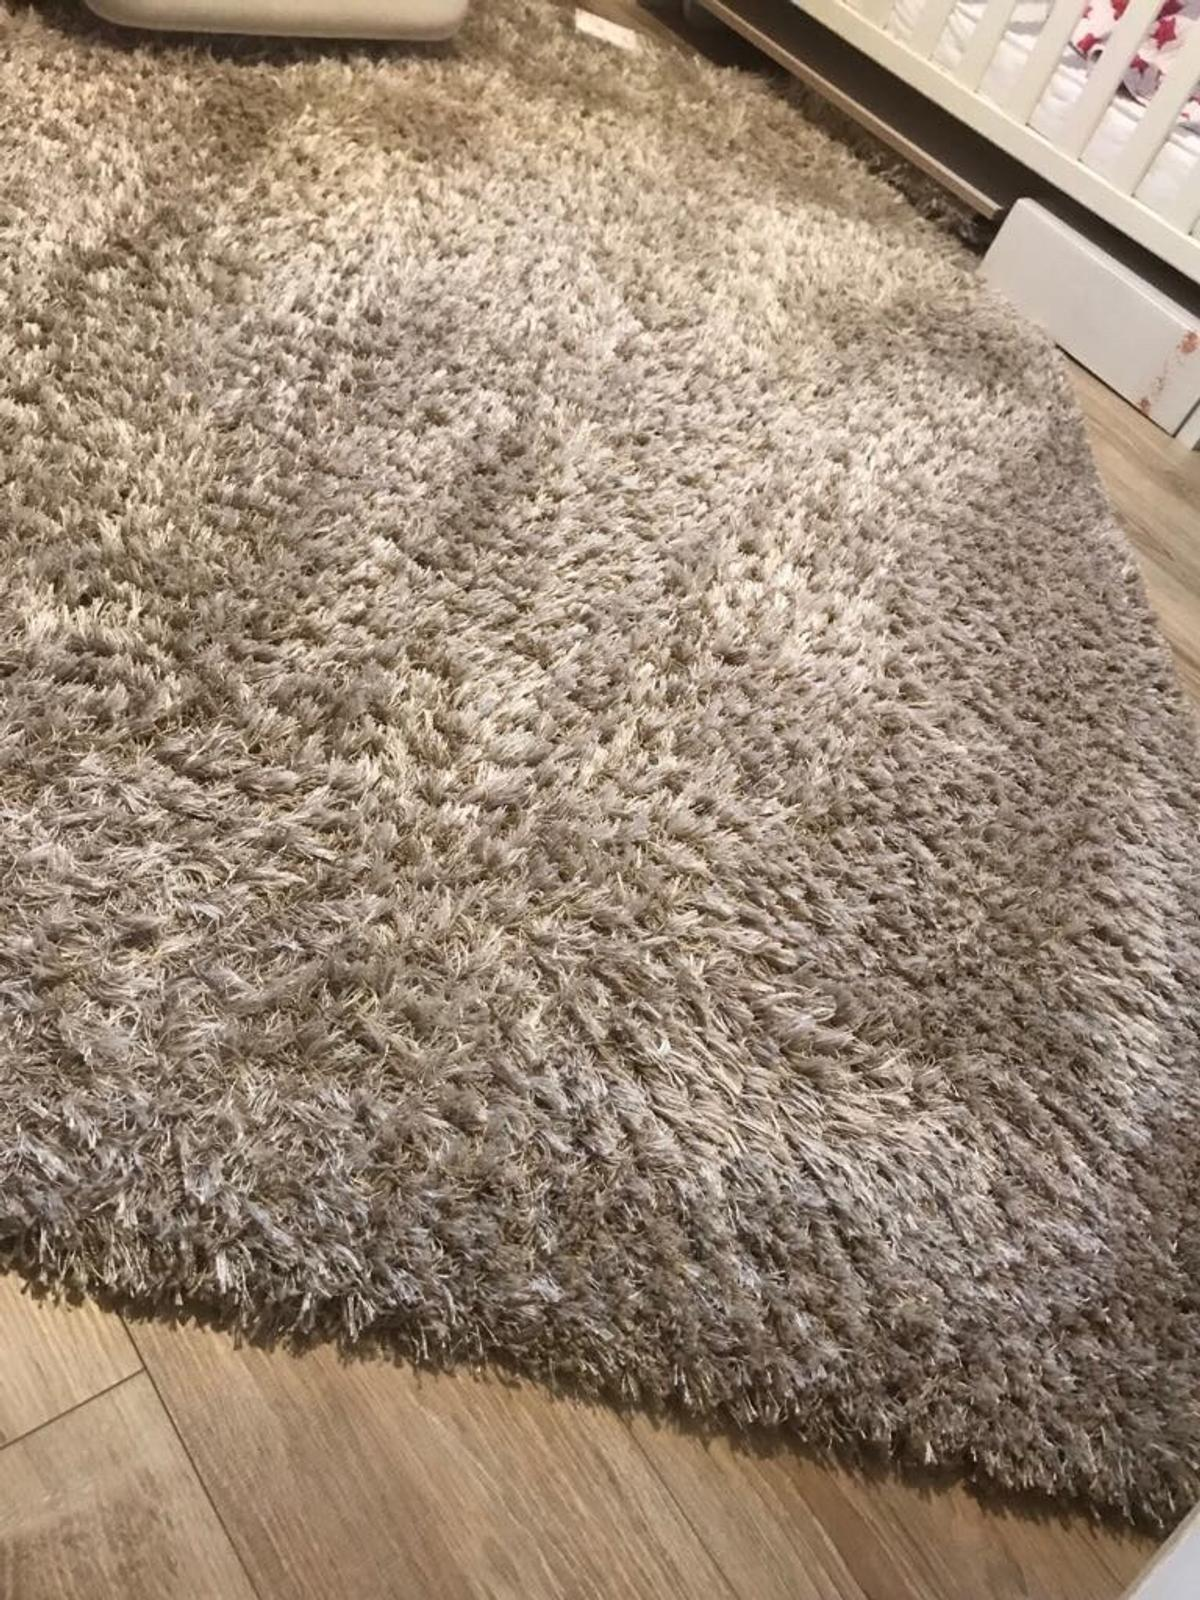 Esprit Teppich Sale Teppich - Esprit Cosy Glamour In 69502 Hemsbach For €50.00 For Sale | Shpock